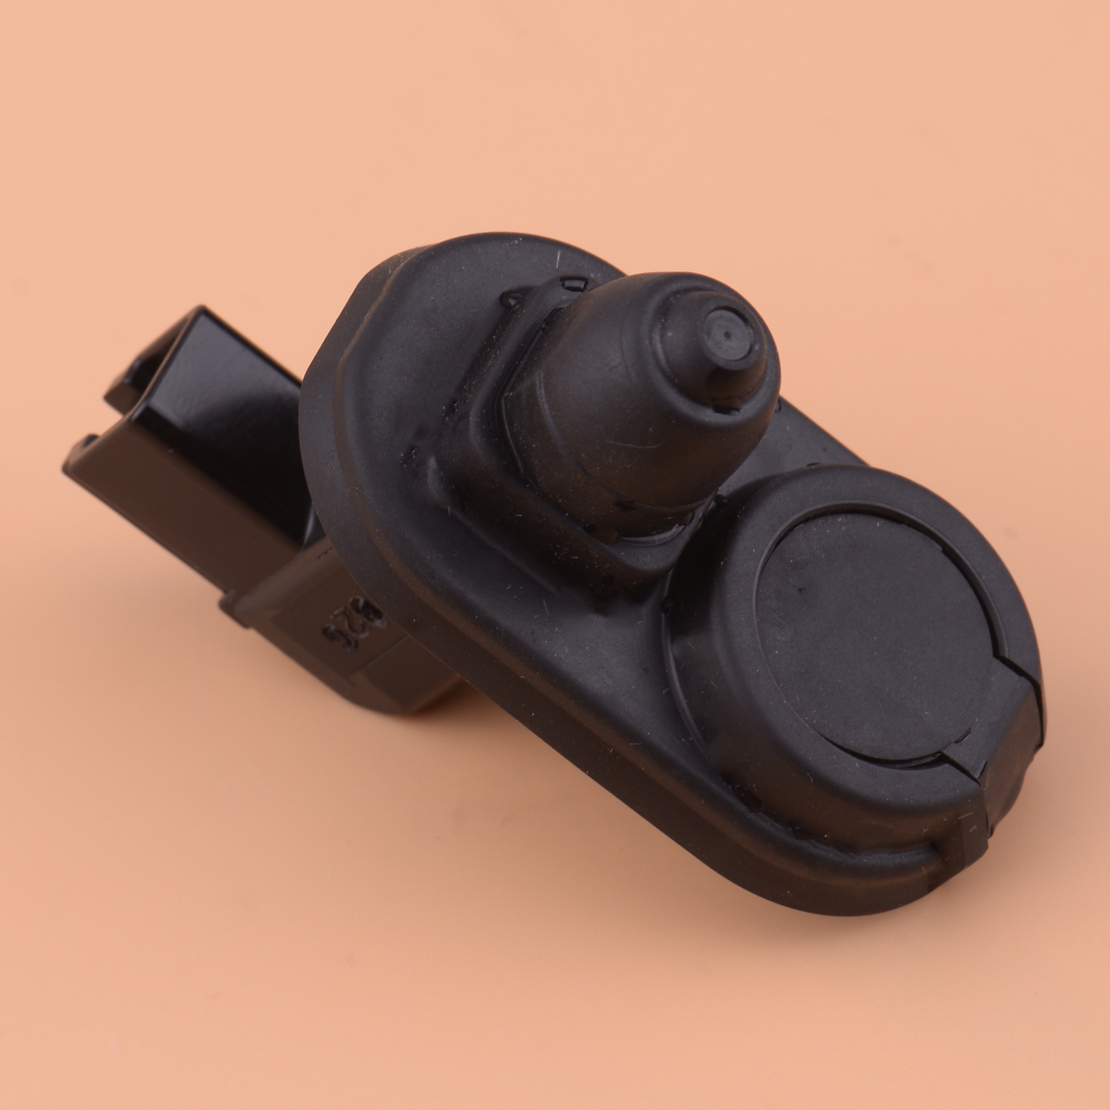 CITALL New Car Black <font><b>Door</b></font> Jamb Light Lamp Switch Fit For Honda Accord <font><b>Civic</b></font> CR-V Crosstour Element Odyssey Pilot Ridgeline image